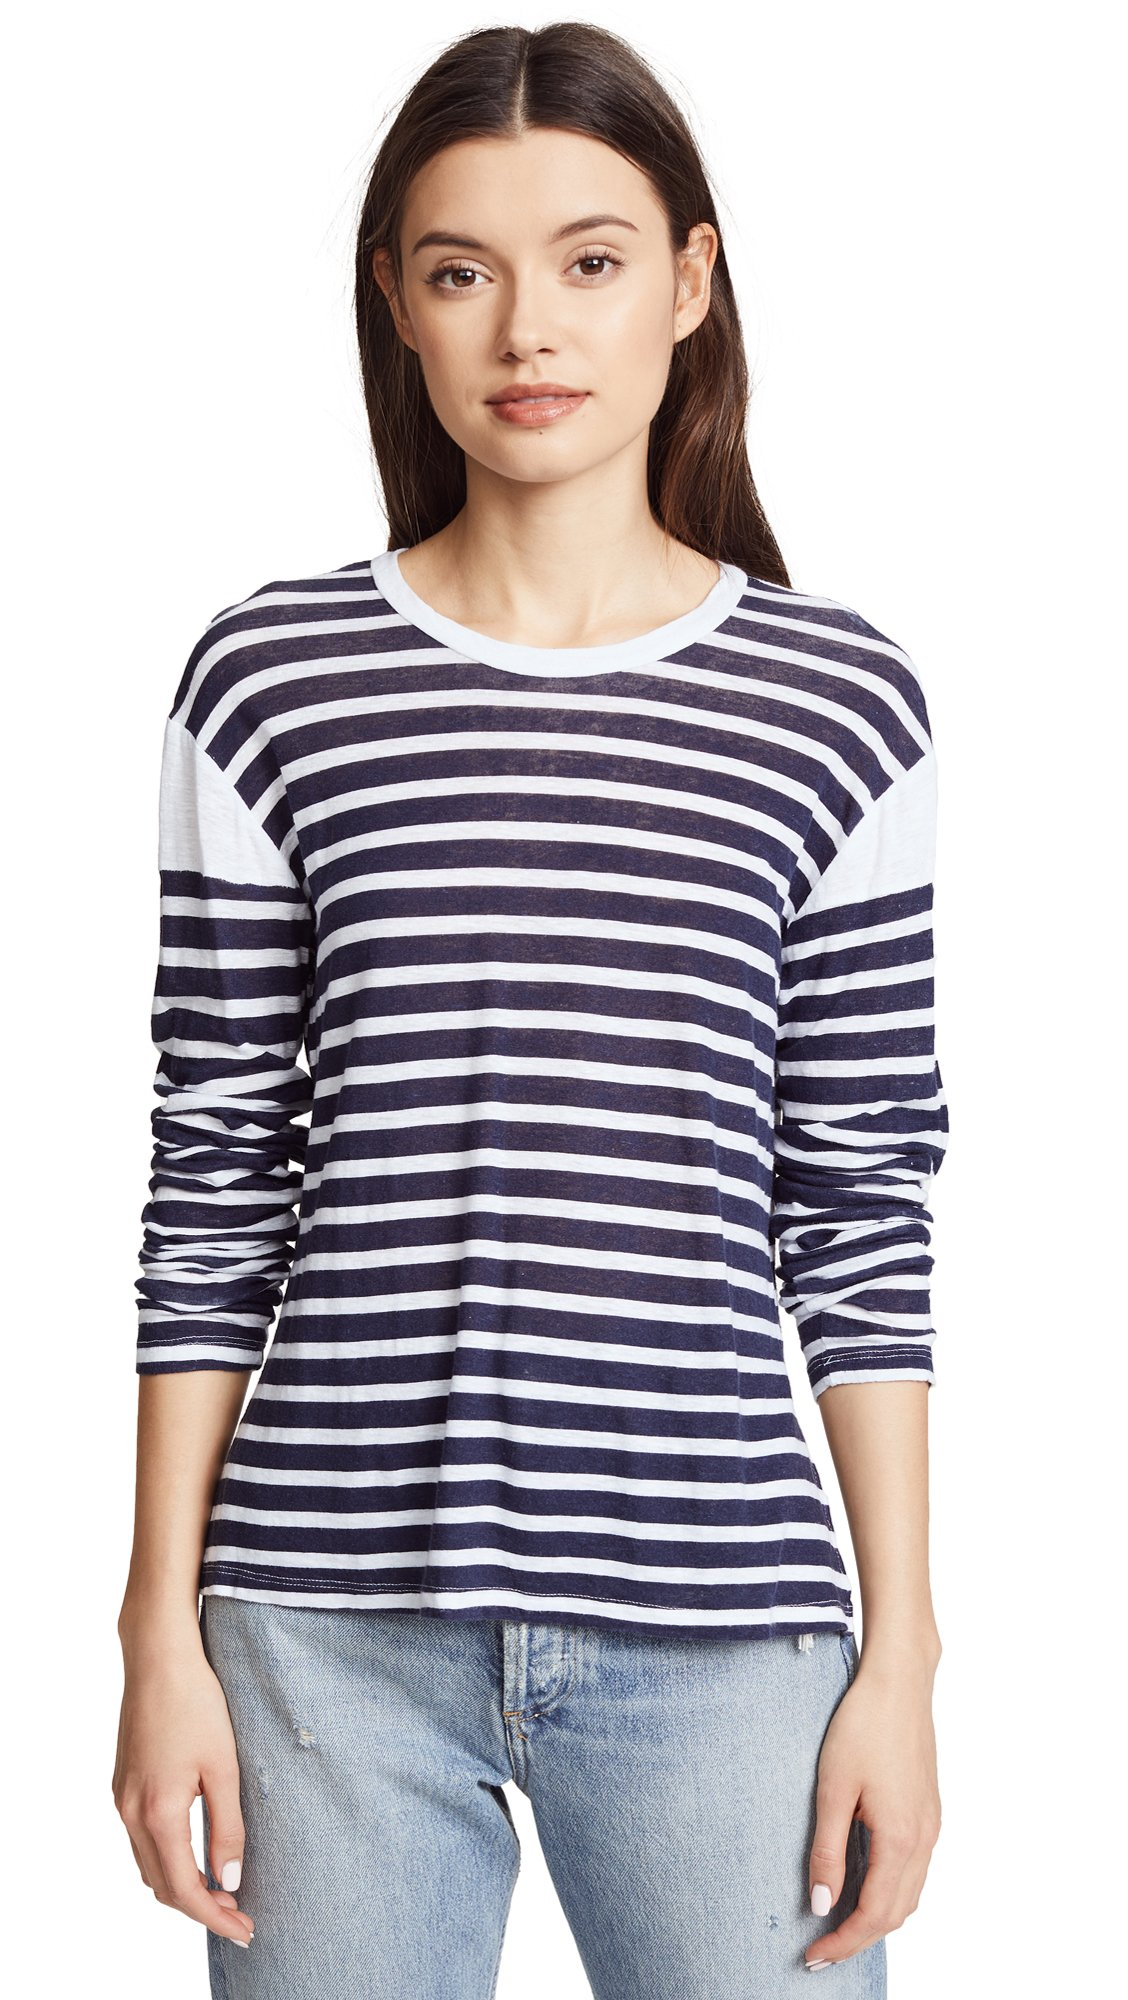 Monrow Women's French Stripe Tee, Navy White Stripe, Extra Small